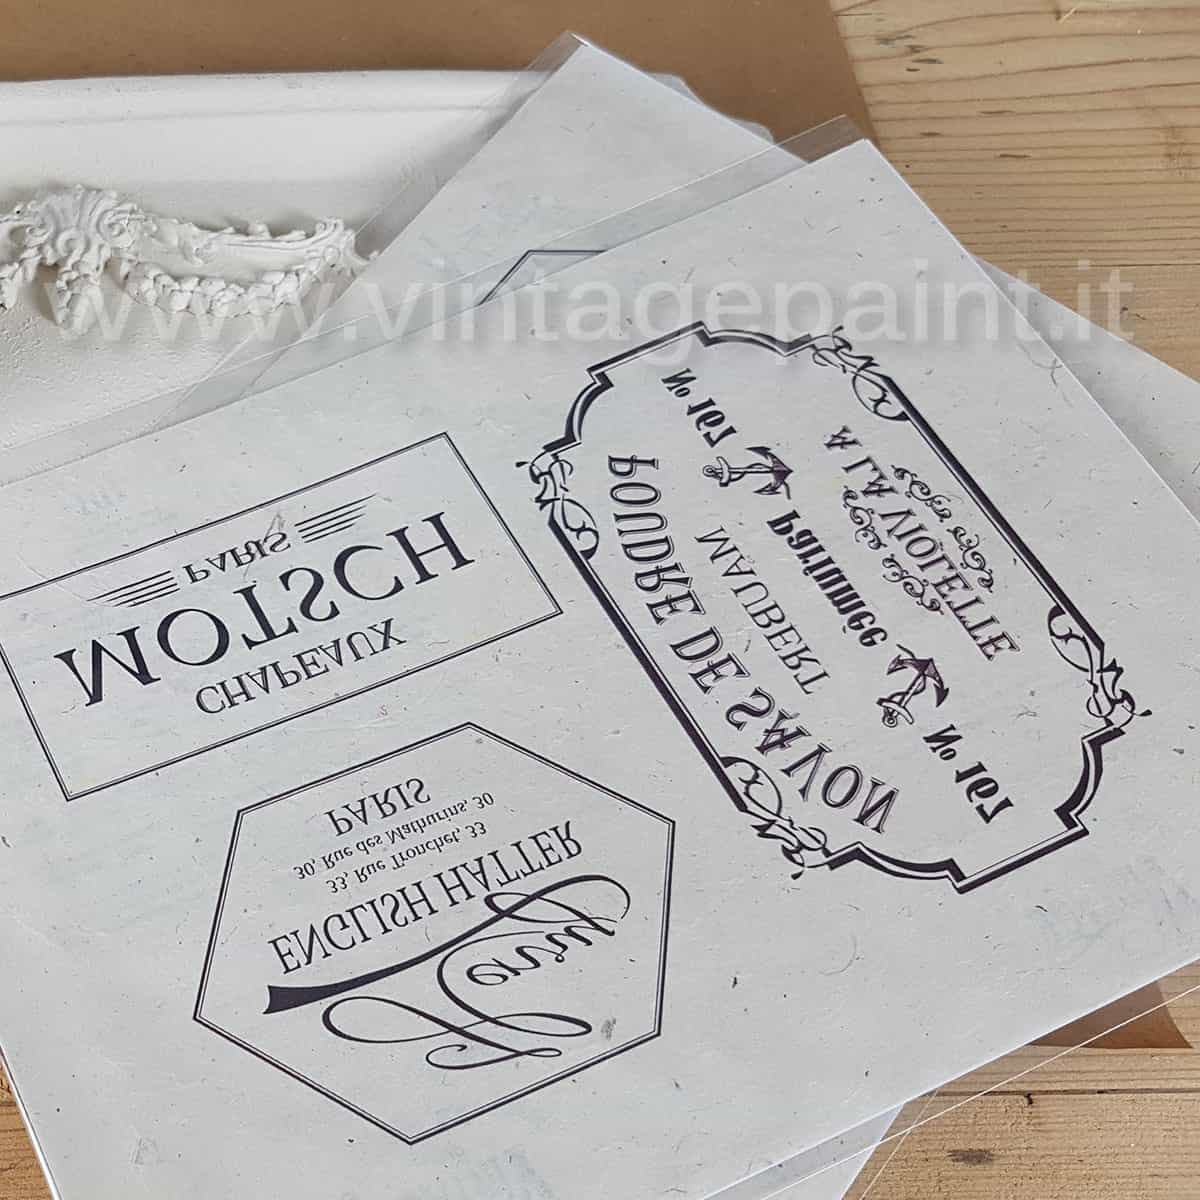 Decorare con le scritte shabby chic della gamma Vintage – VIDEO TUTORIAL